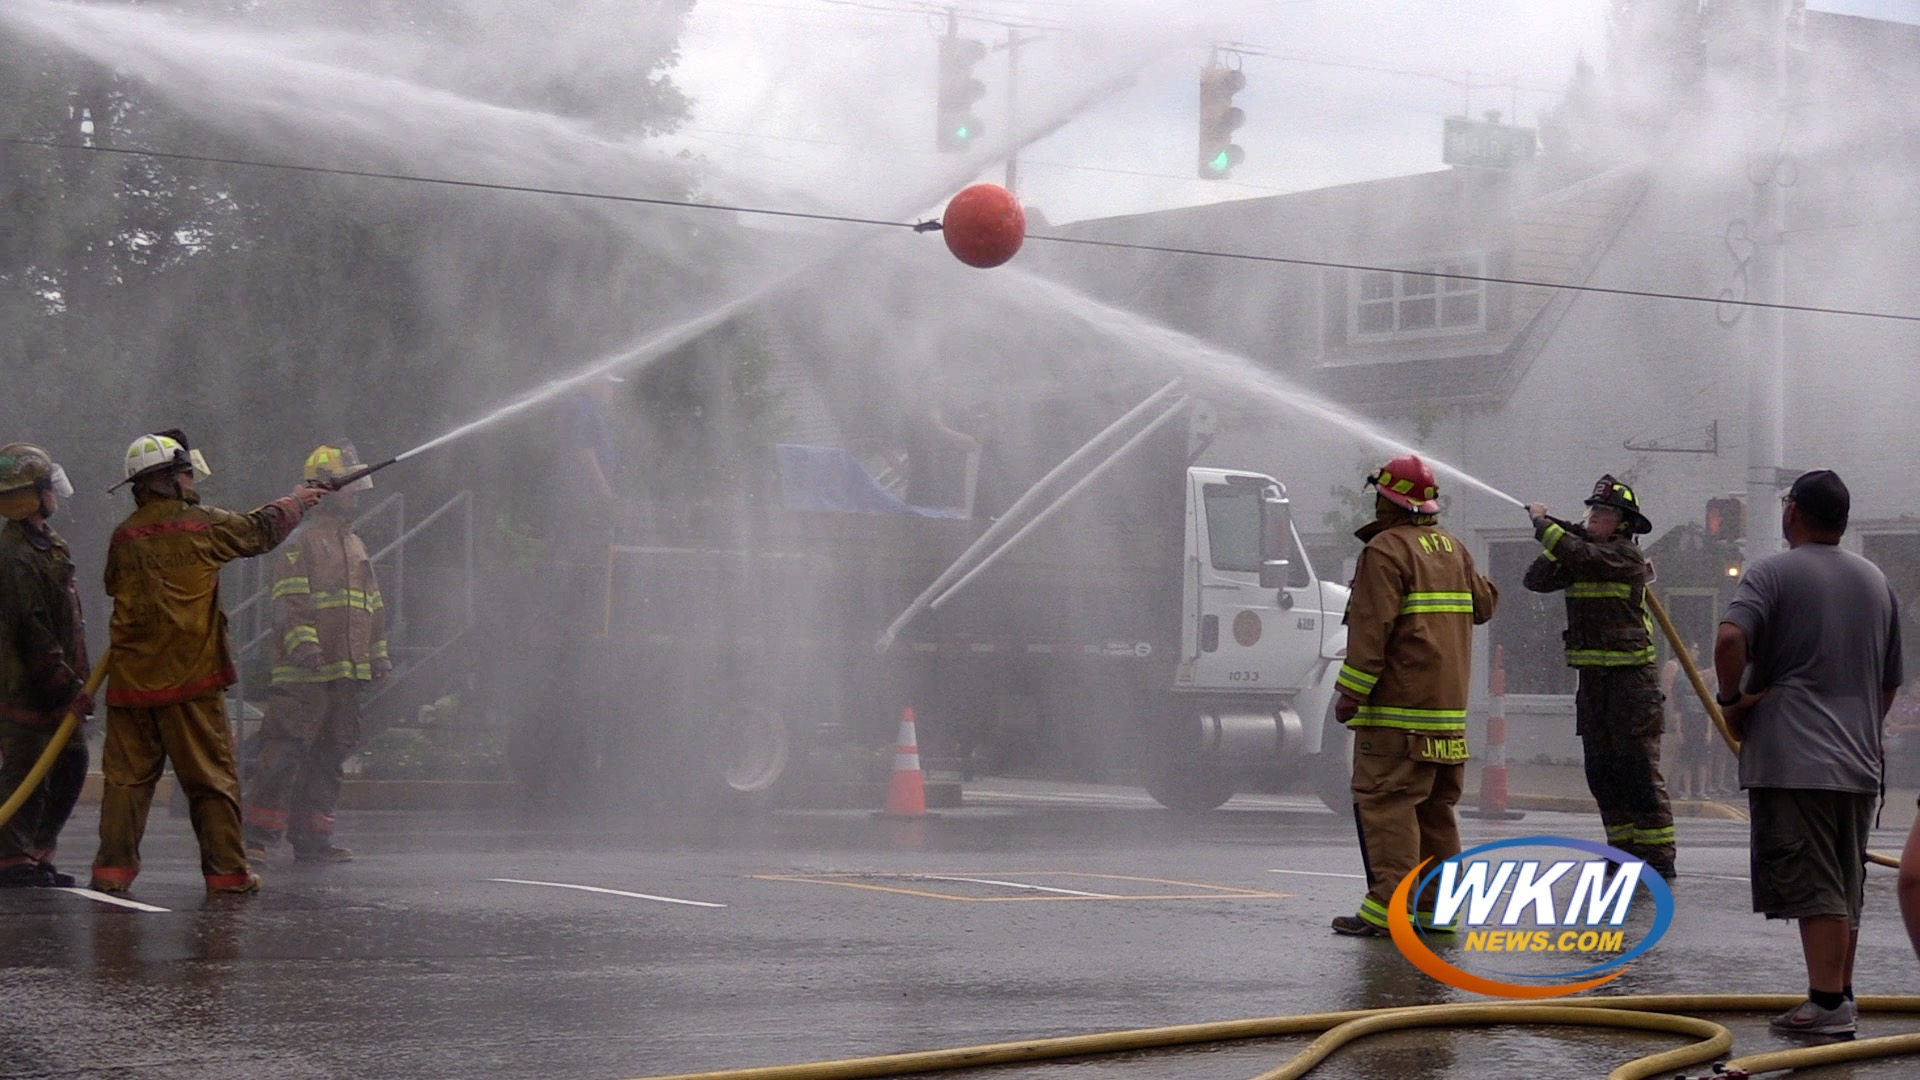 Regatta 2021: Fire Stations Compete For First Place in Water Ball Competition